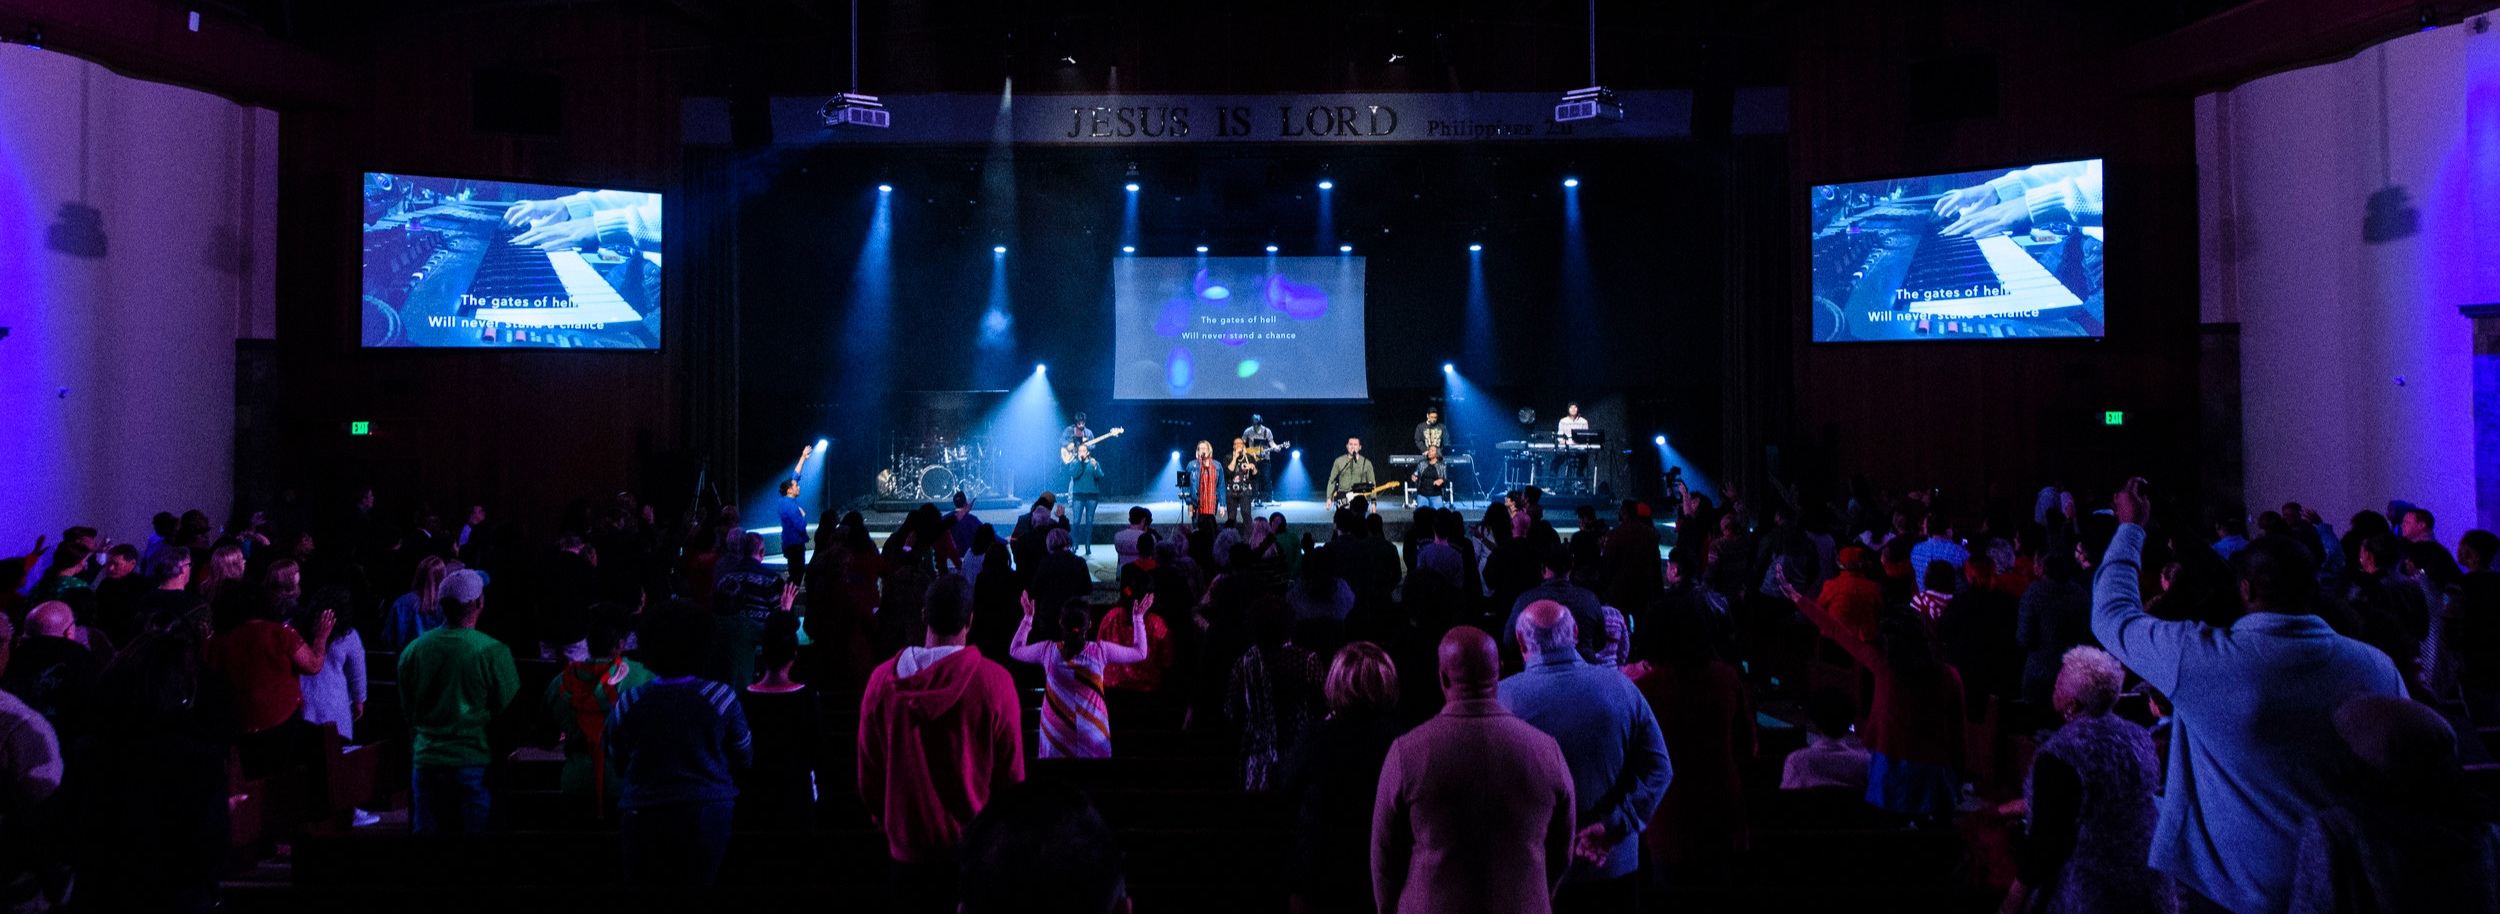 Shiloh Church: - Using technology to create connection.